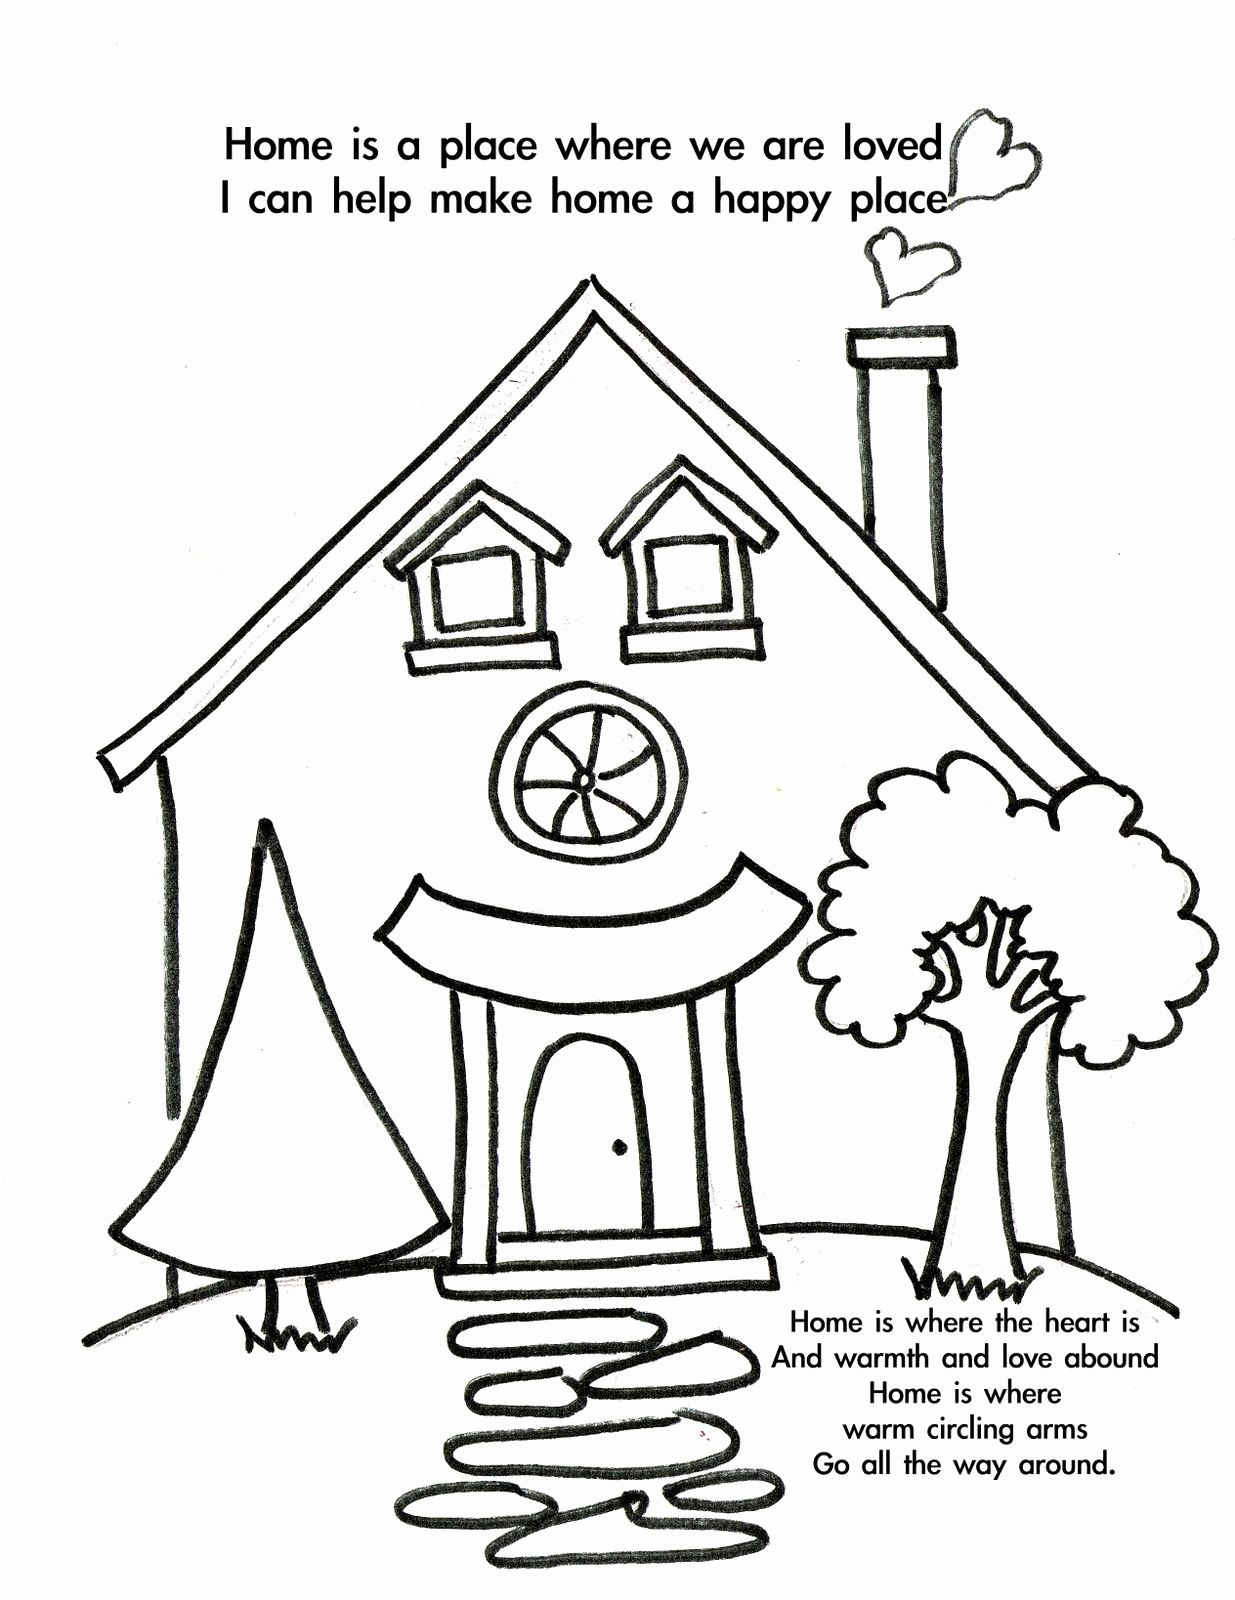 Coloring Pages For Kids Welcome Home Detailed In 2020 Coloring Pages For Kids Kids Christmas Coloring Pages Detailed Coloring Pages